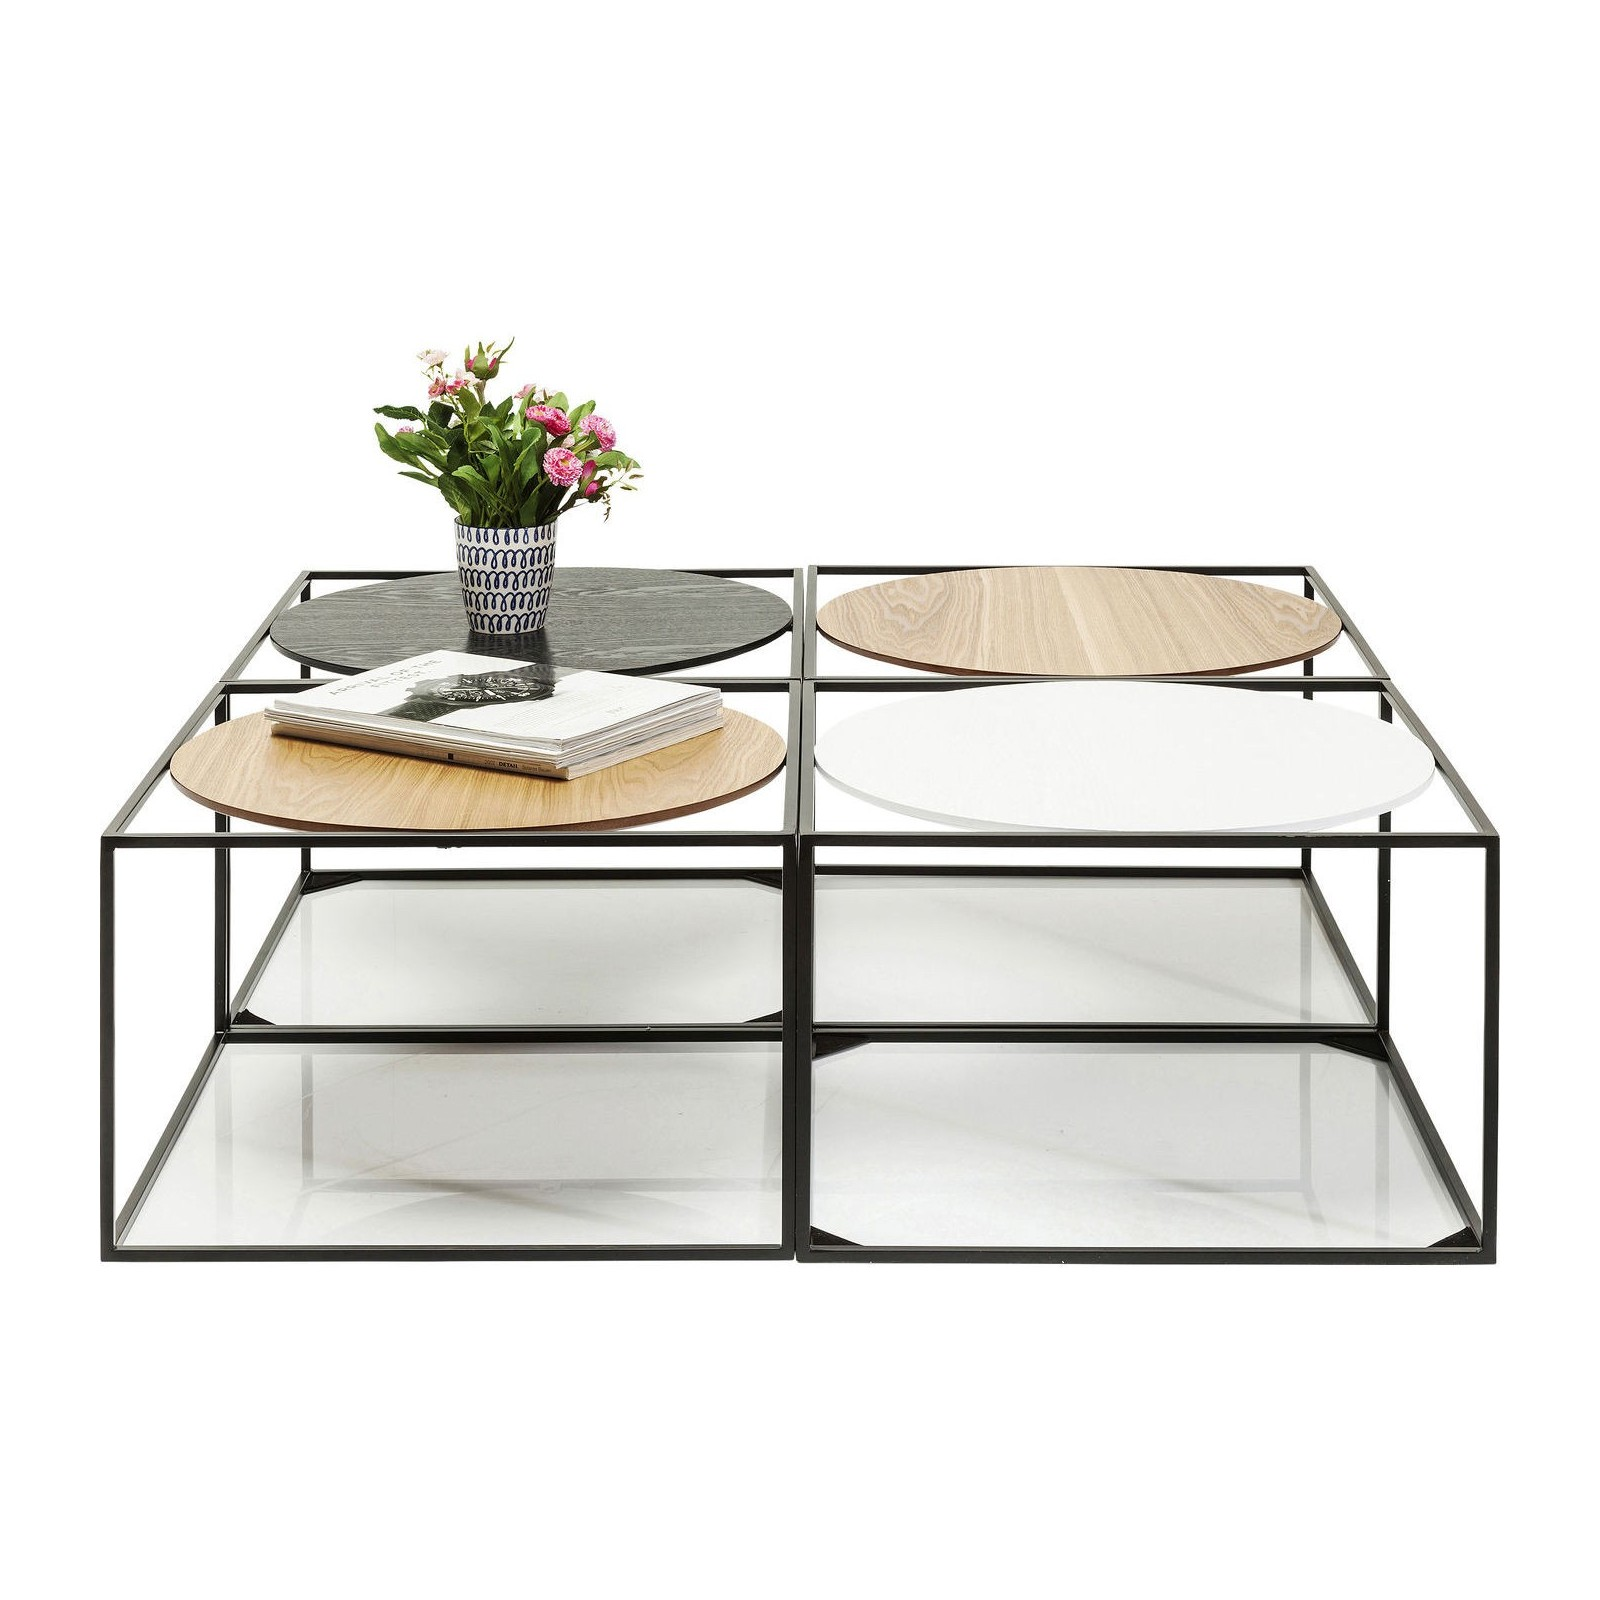 table basse habitat table basse dublin bois naturel prix 270 00 euros. Black Bedroom Furniture Sets. Home Design Ideas